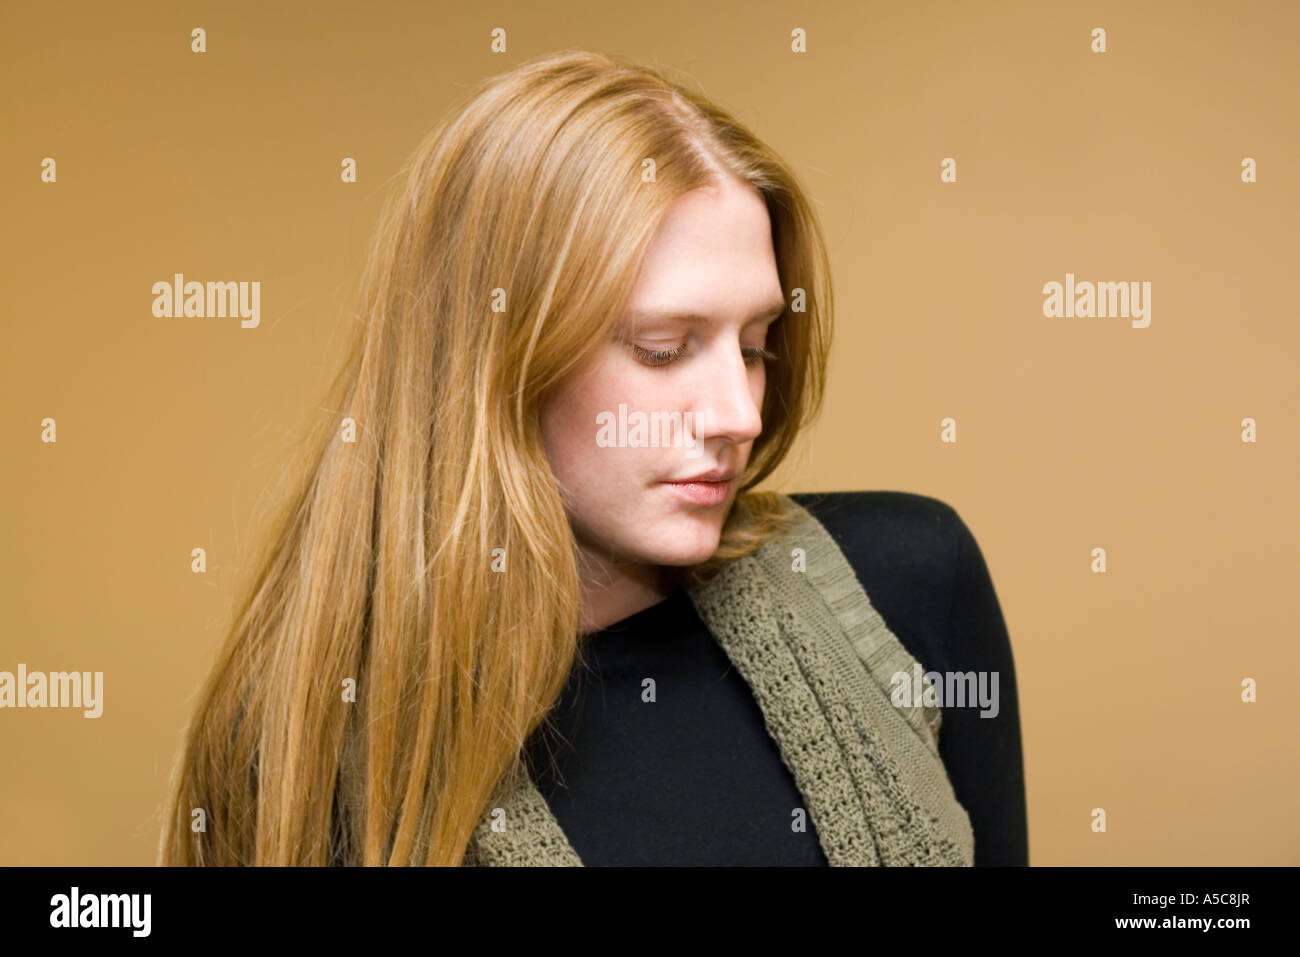 Blond model in her early 20s - Stock Image